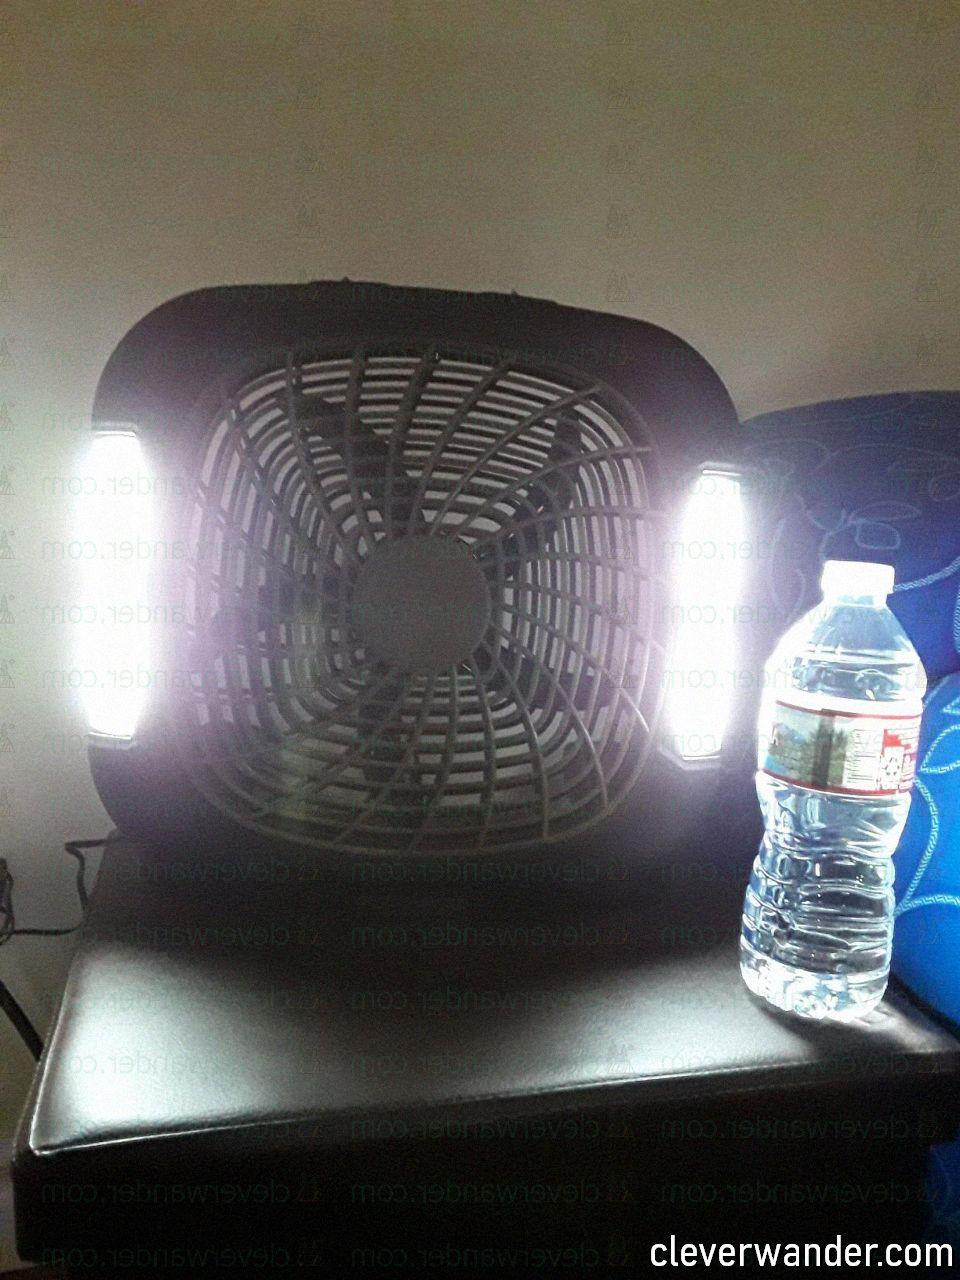 O2COOL Treva Speed Battery Powered Portable Fan - image review 4